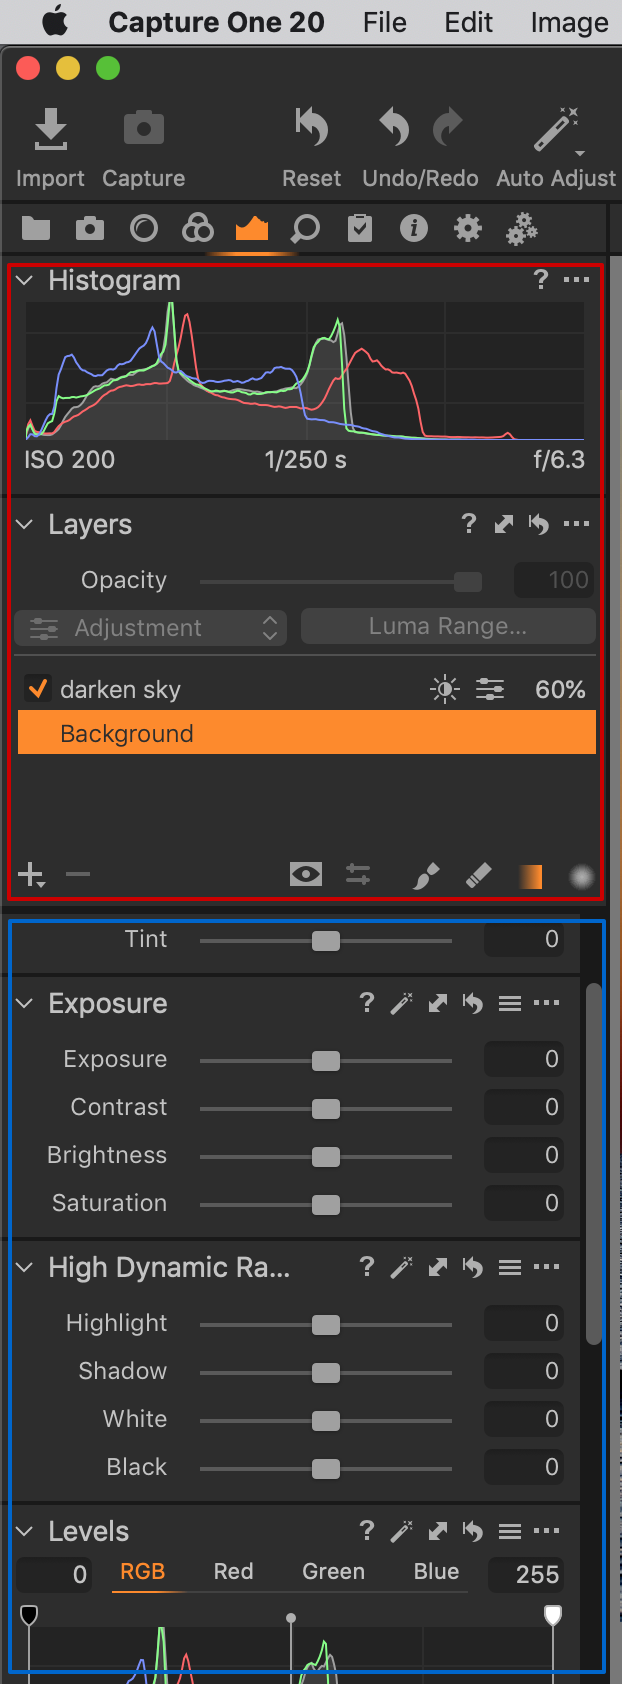 tool tab, pinned and scrollable area, capture one 20